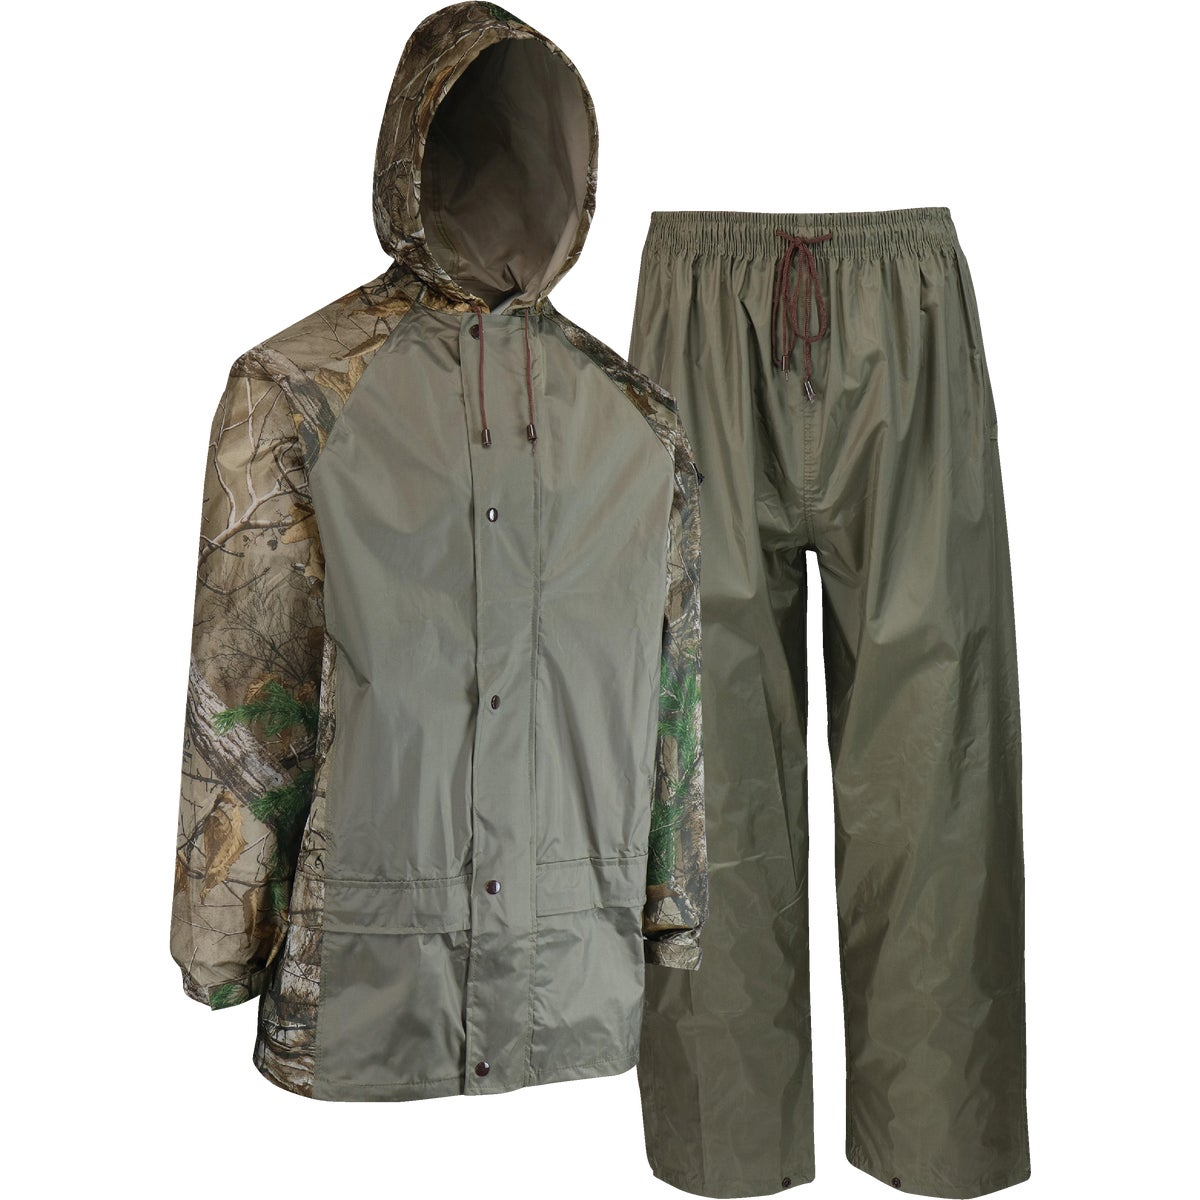 3X 2PC CAMO RAIN SUIT - R1803X by Custom Leathercraft